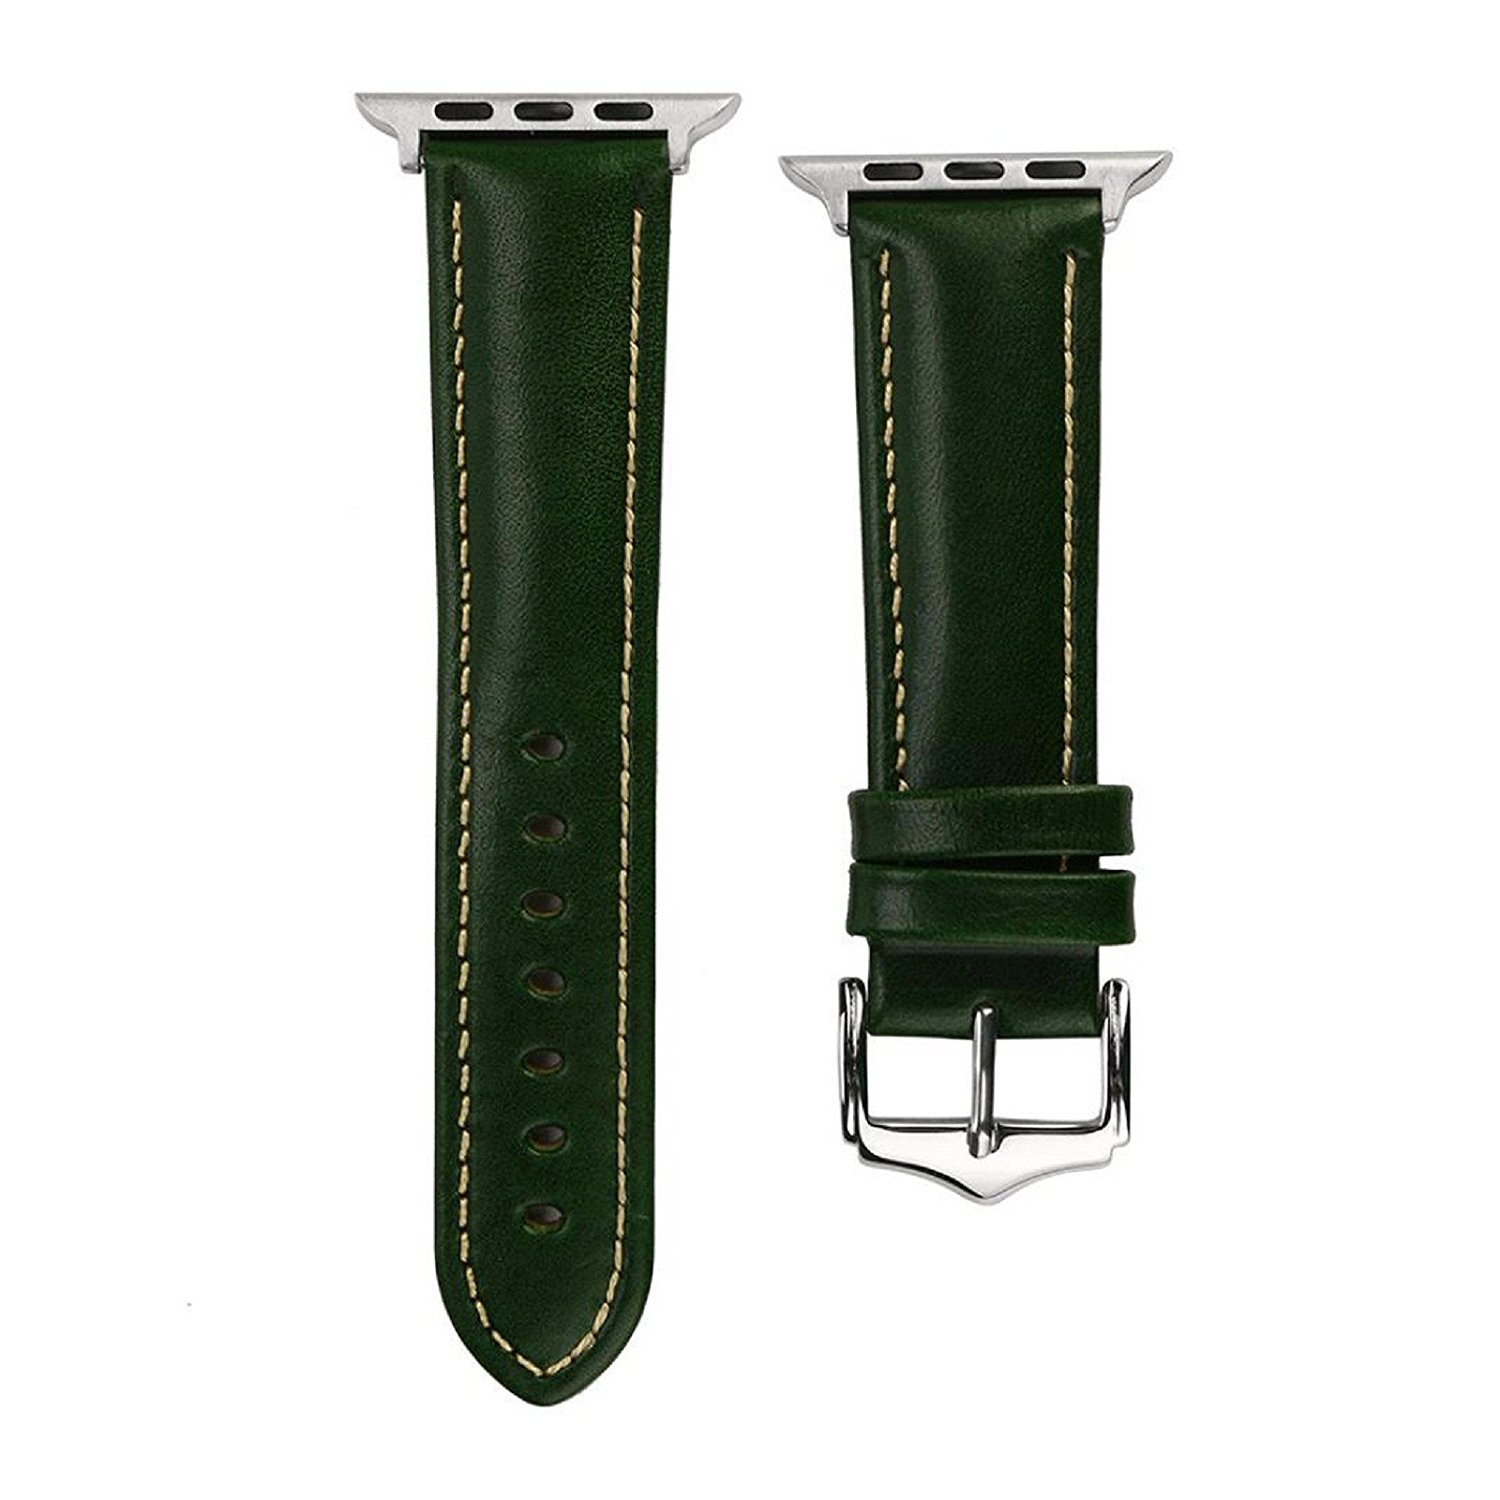 Owill Replacement Leather Knitting Edge Watch Bracelet Strap Band For Apple Watch Series 1/2/3 38mm, Band Length: 120+75MM (Green)